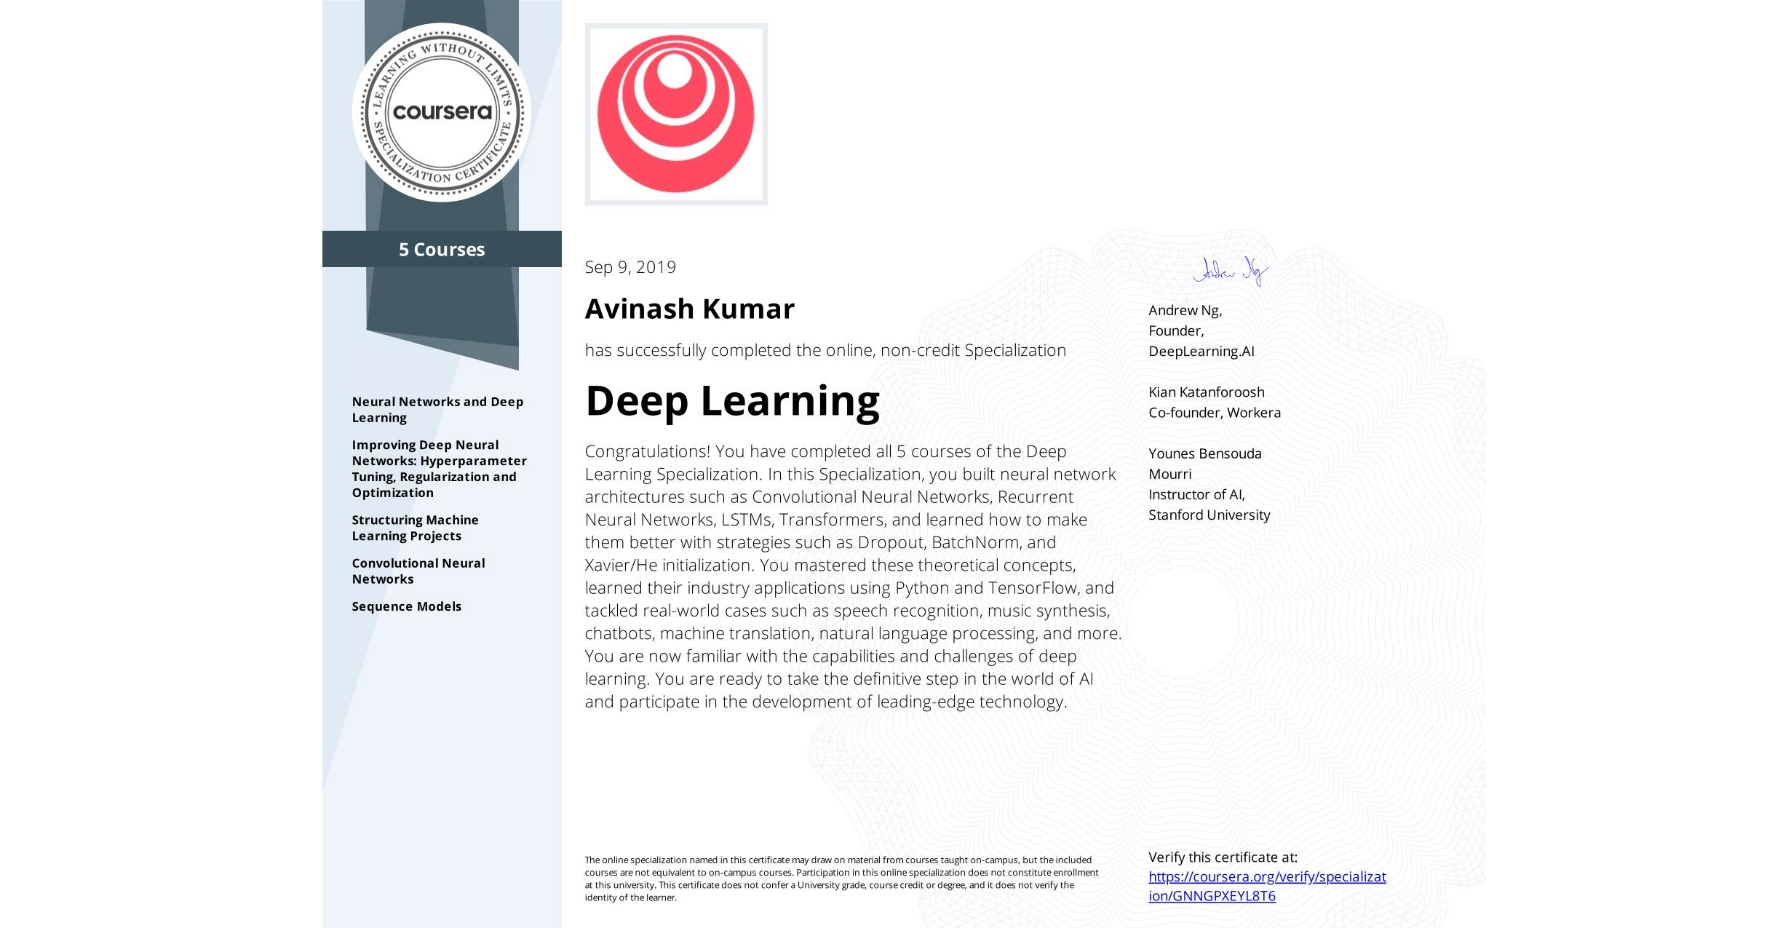 View certificate for Avinash KUMAR, Deep Learning, offered through Coursera. Congratulations! You have completed all 5 courses of the Deep Learning Specialization.  In this Specialization, you built neural network architectures such as Convolutional Neural Networks, Recurrent Neural Networks, LSTMs, Transformers, and learned how to make them better with strategies such as Dropout, BatchNorm, and Xavier/He initialization. You mastered these theoretical concepts, learned their industry applications using Python and TensorFlow, and tackled real-world cases such as speech recognition, music synthesis, chatbots, machine translation, natural language processing, and more.  You are now familiar with the capabilities and challenges of deep learning. You are ready to take the definitive step in the world of AI and participate in the development of leading-edge technology.